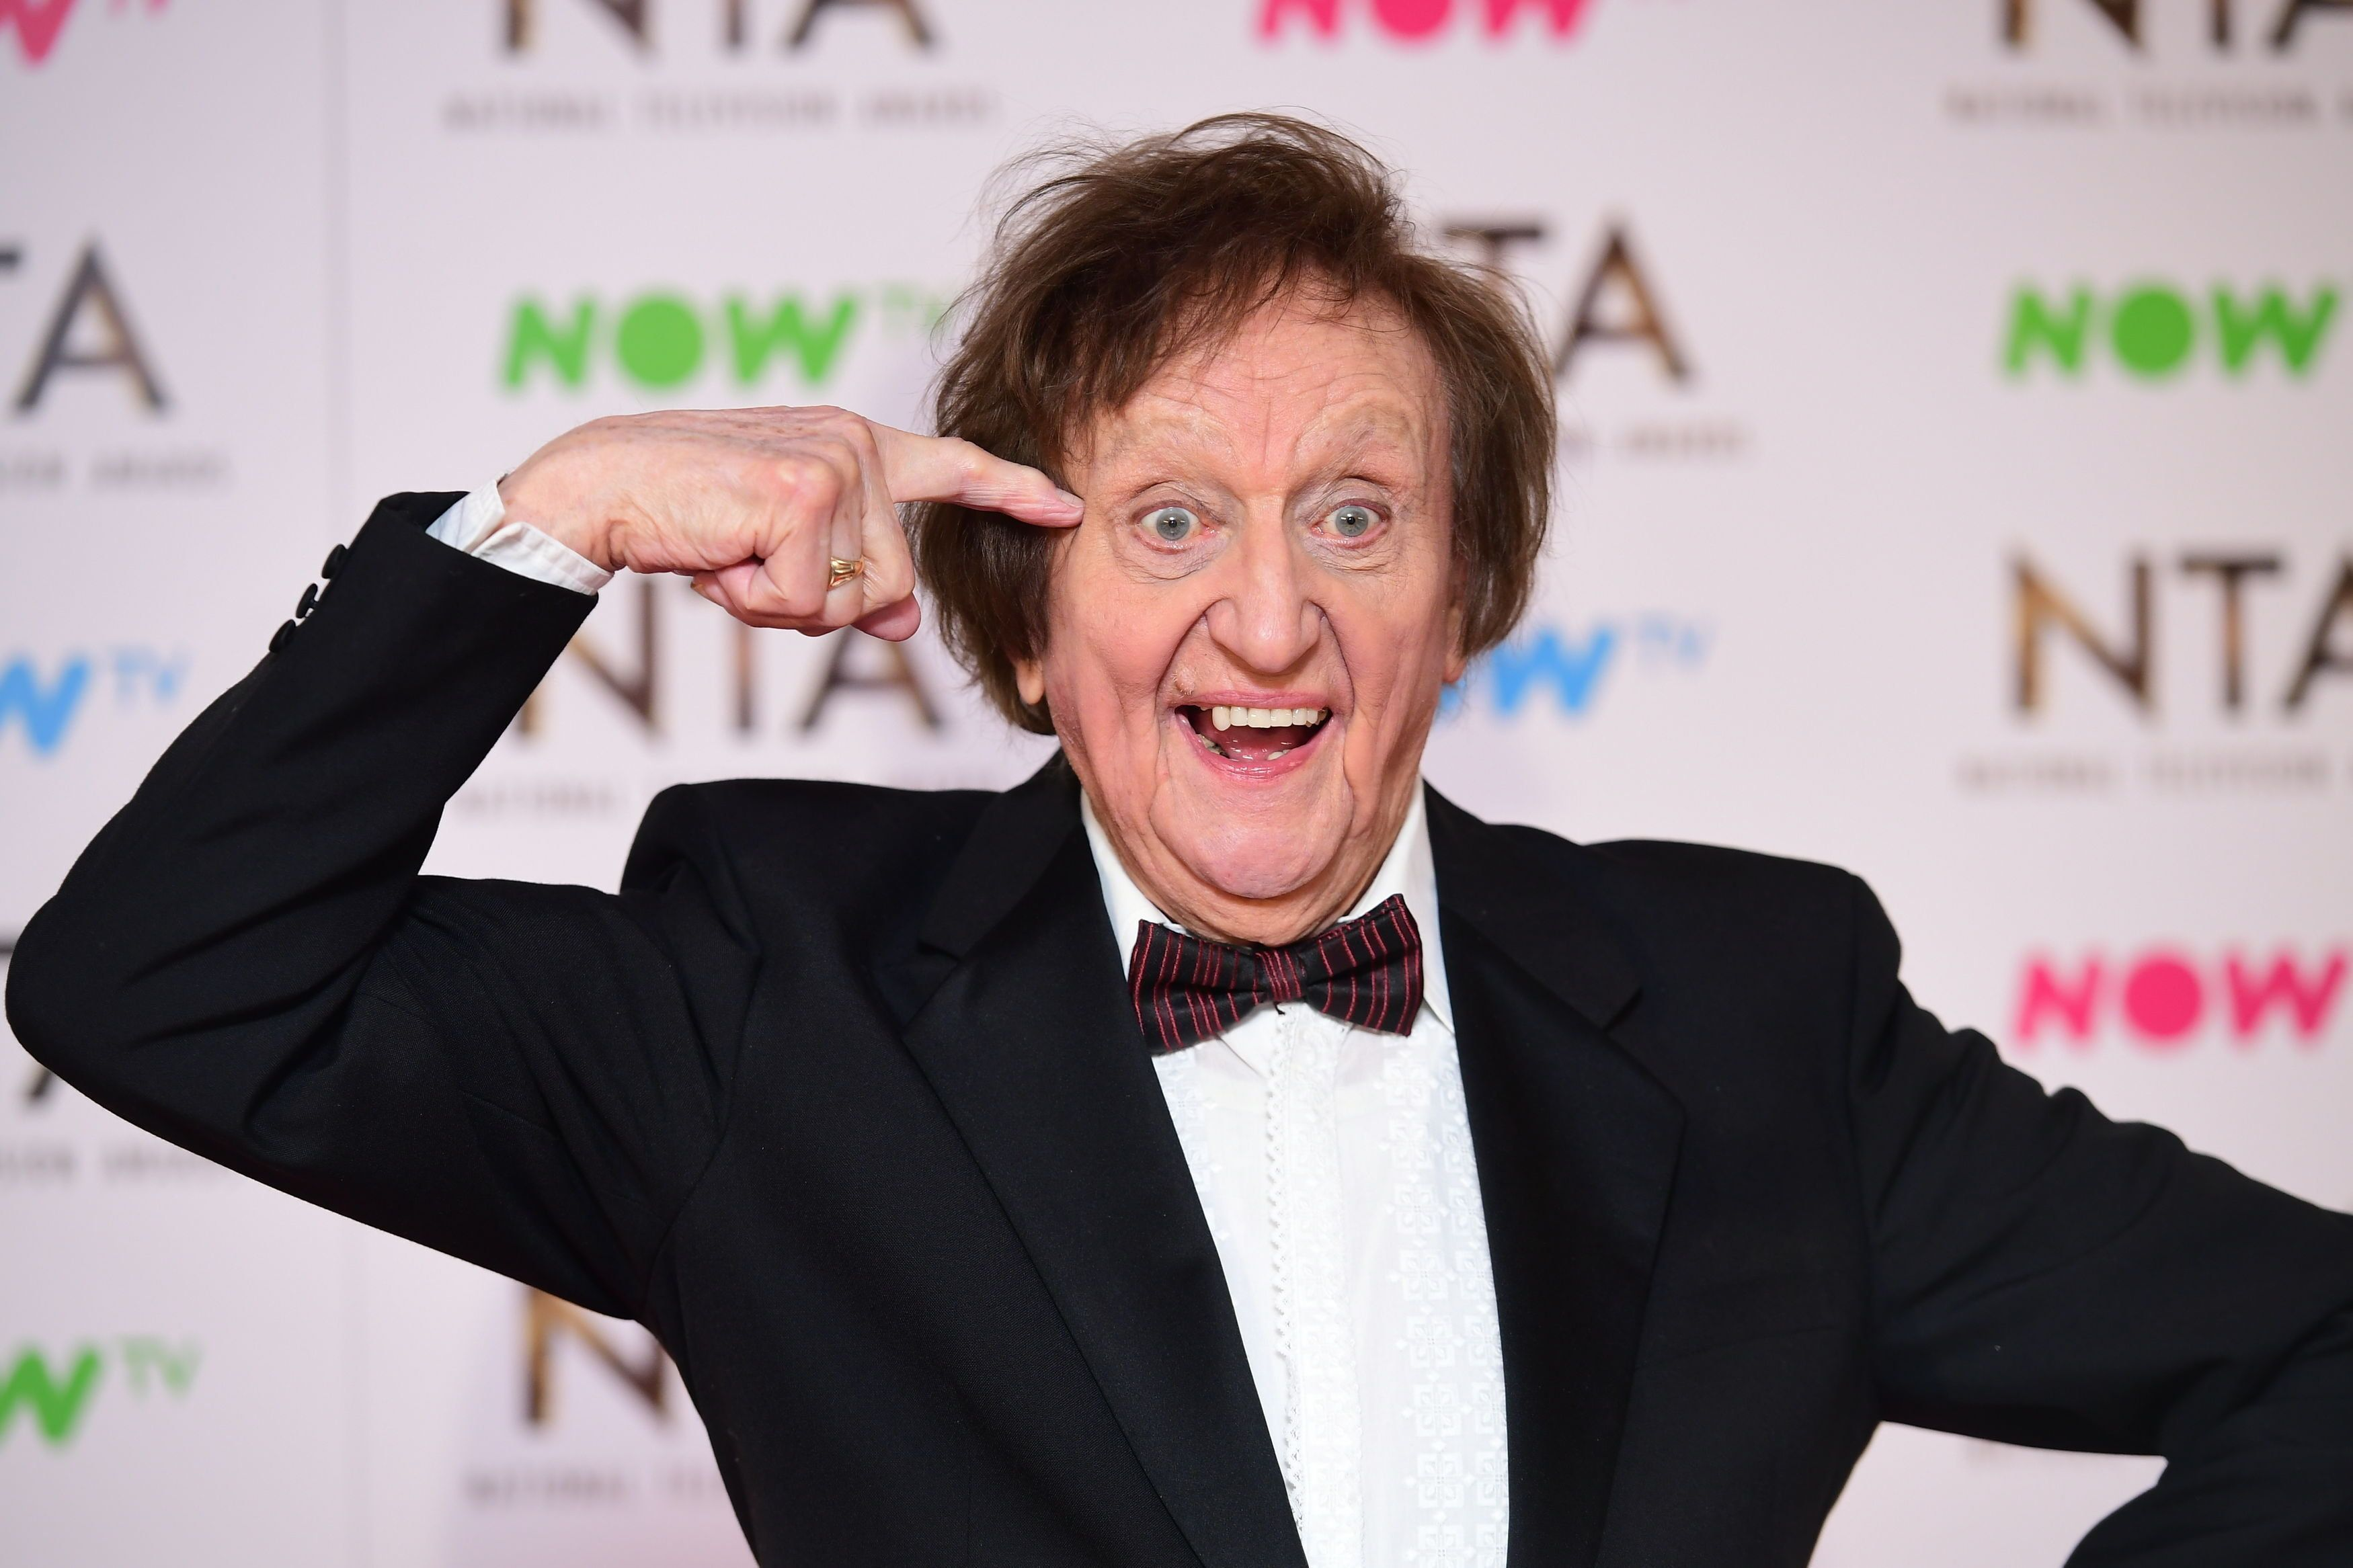 Tickling sticks come out as Liverpool waves goodbye to Sir Ken Dodd